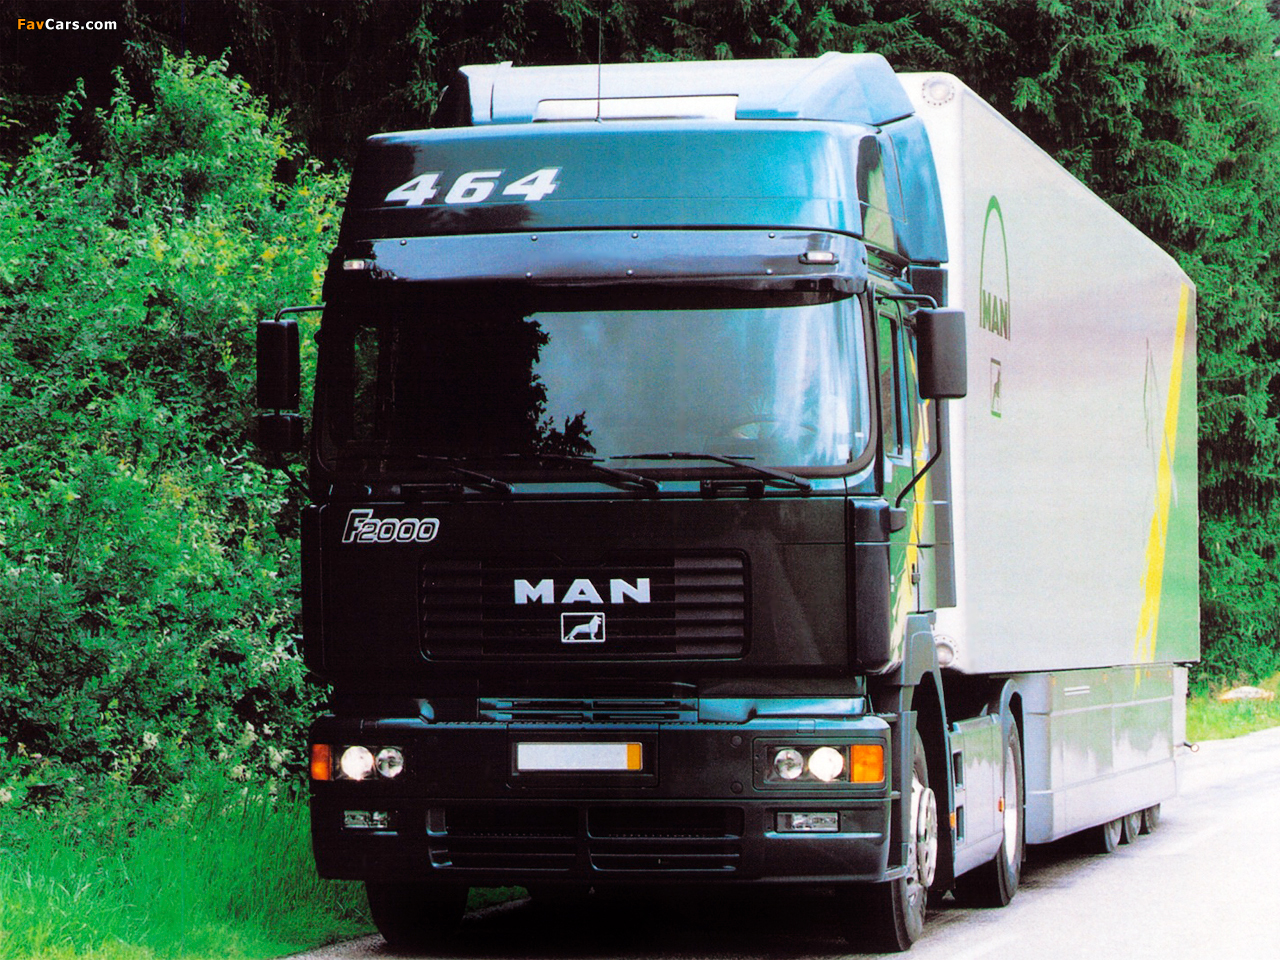 MAN_westerhof-trucks